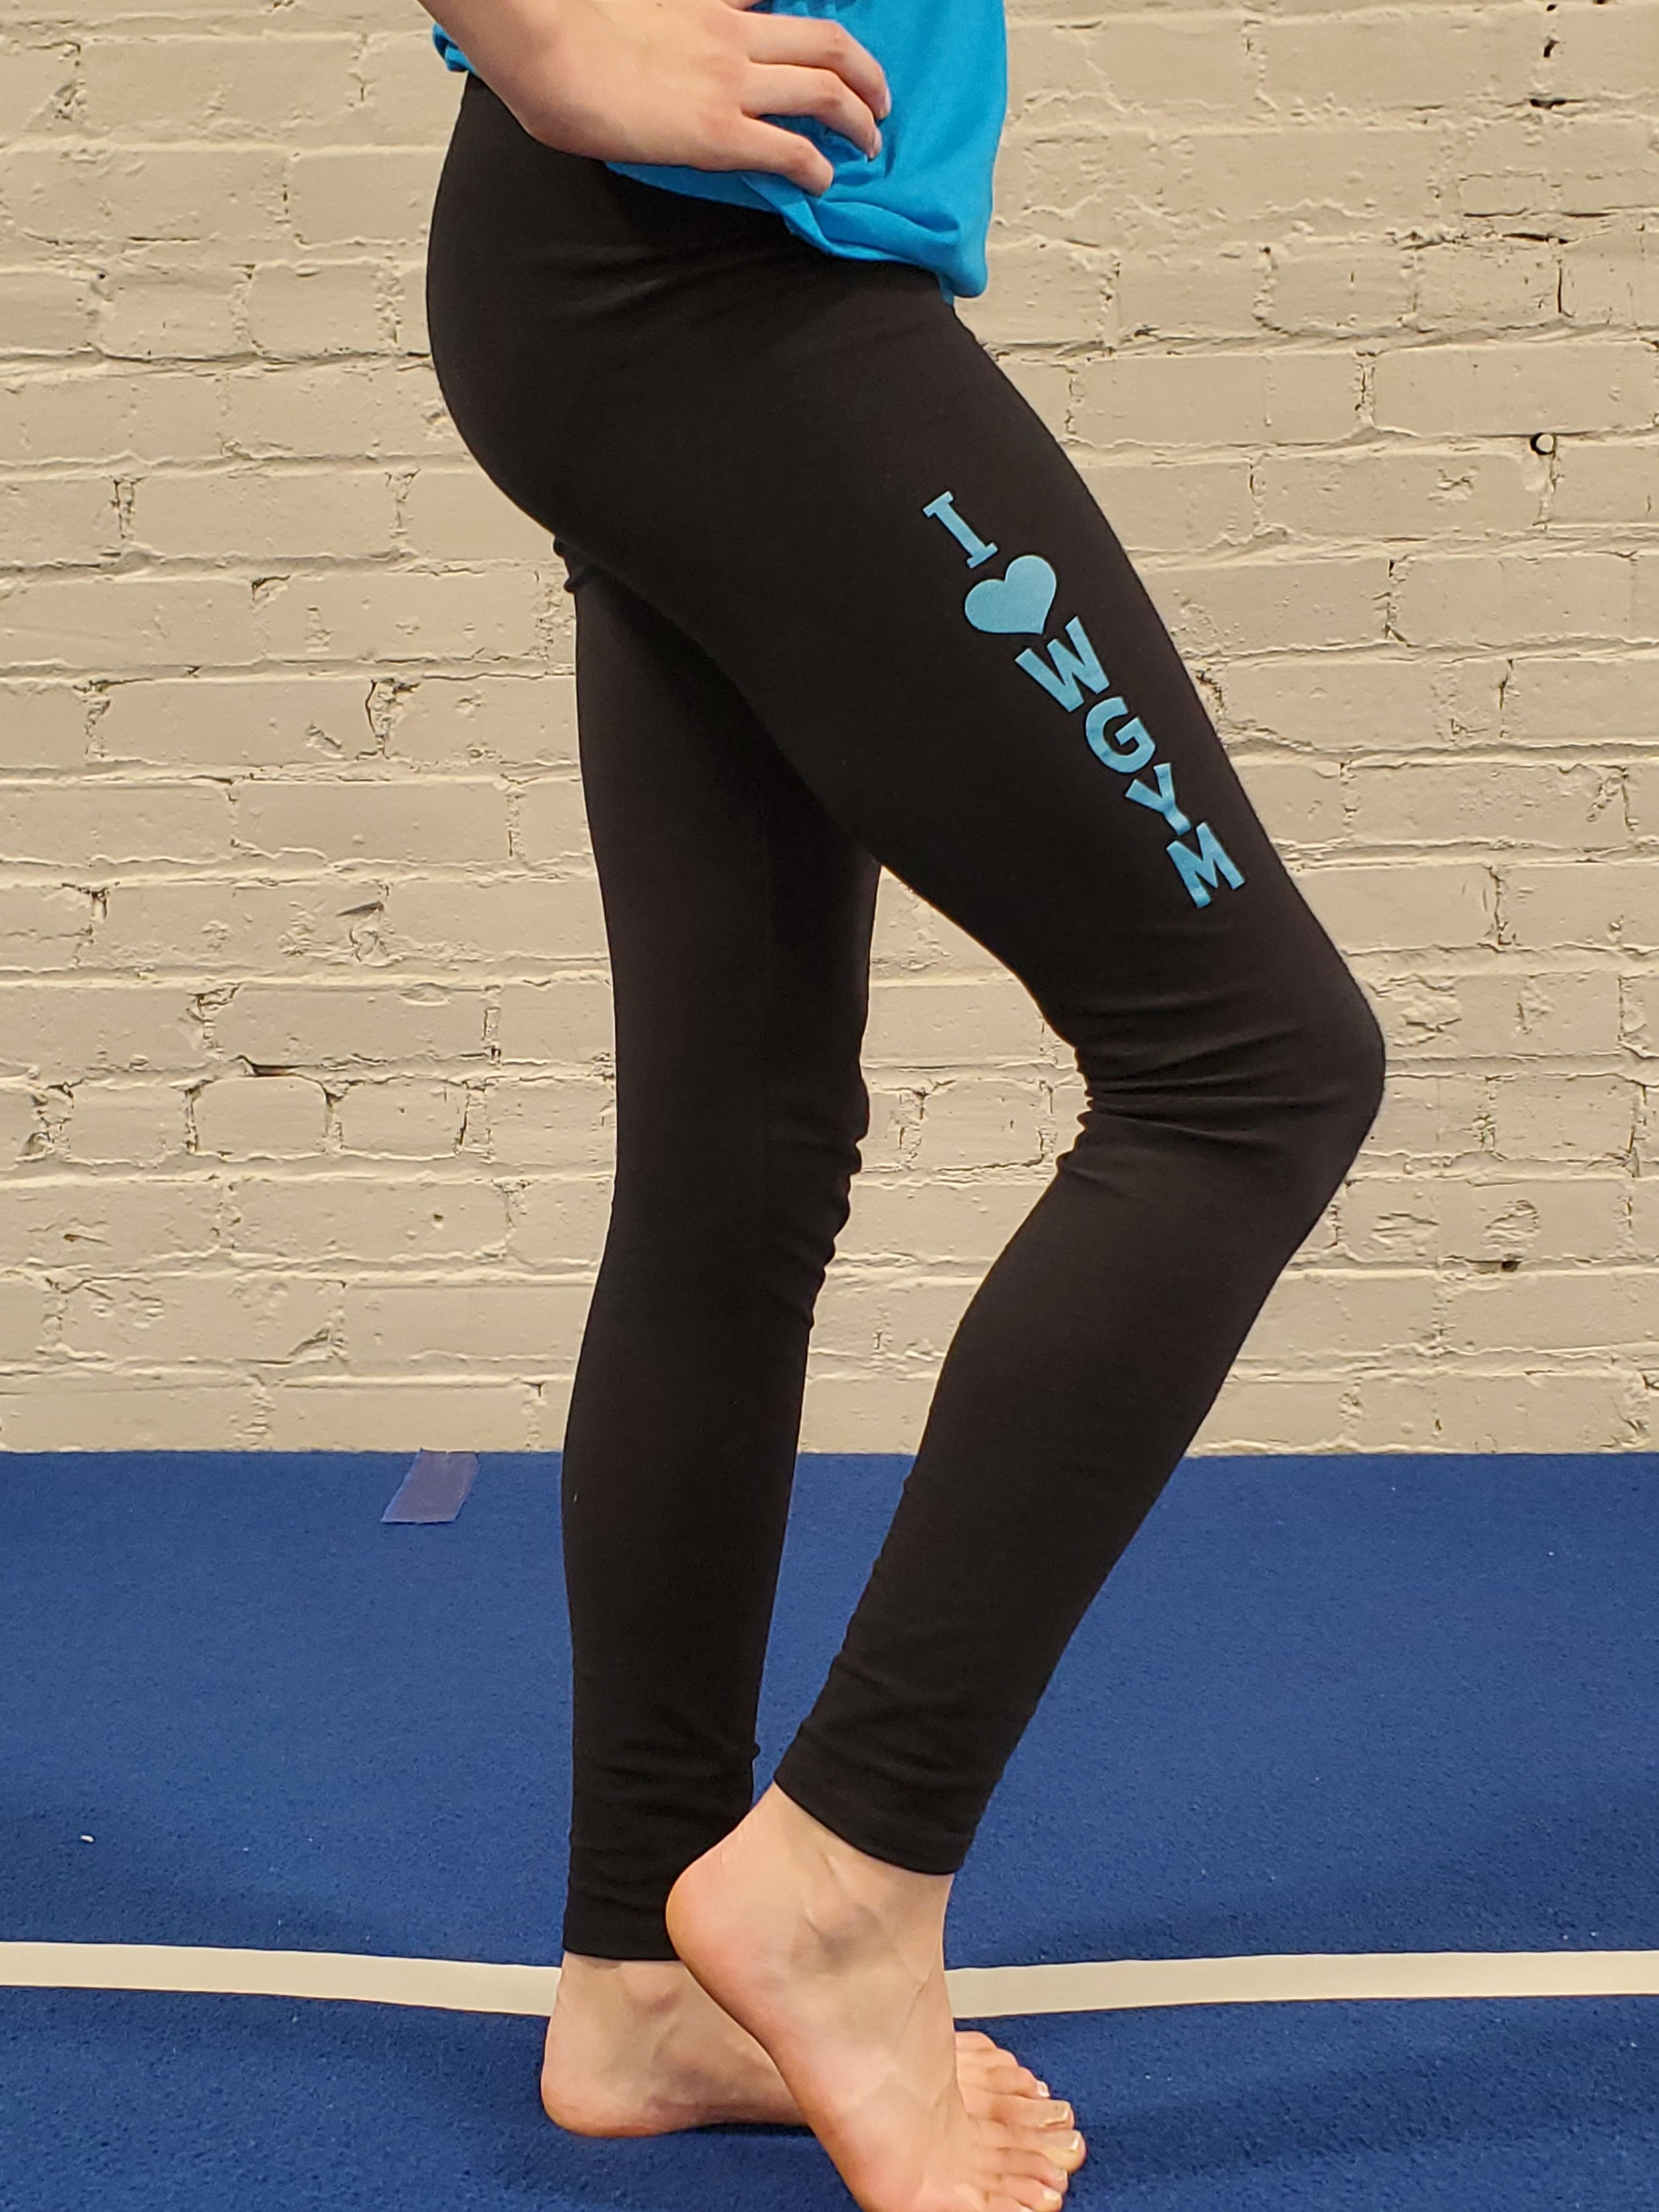 LEGGINGS $20   Boxercraft Brand - I {heart} WGym in Metallic Blue  Anna is wearing Adult Small in photo.  Available Sizes: Youth Small (6/8),Youth Medium (10/12), Youth Large (14/16), Adult Small, Adult Medium, Adult Large, Adult XLarge, Adult 2XL